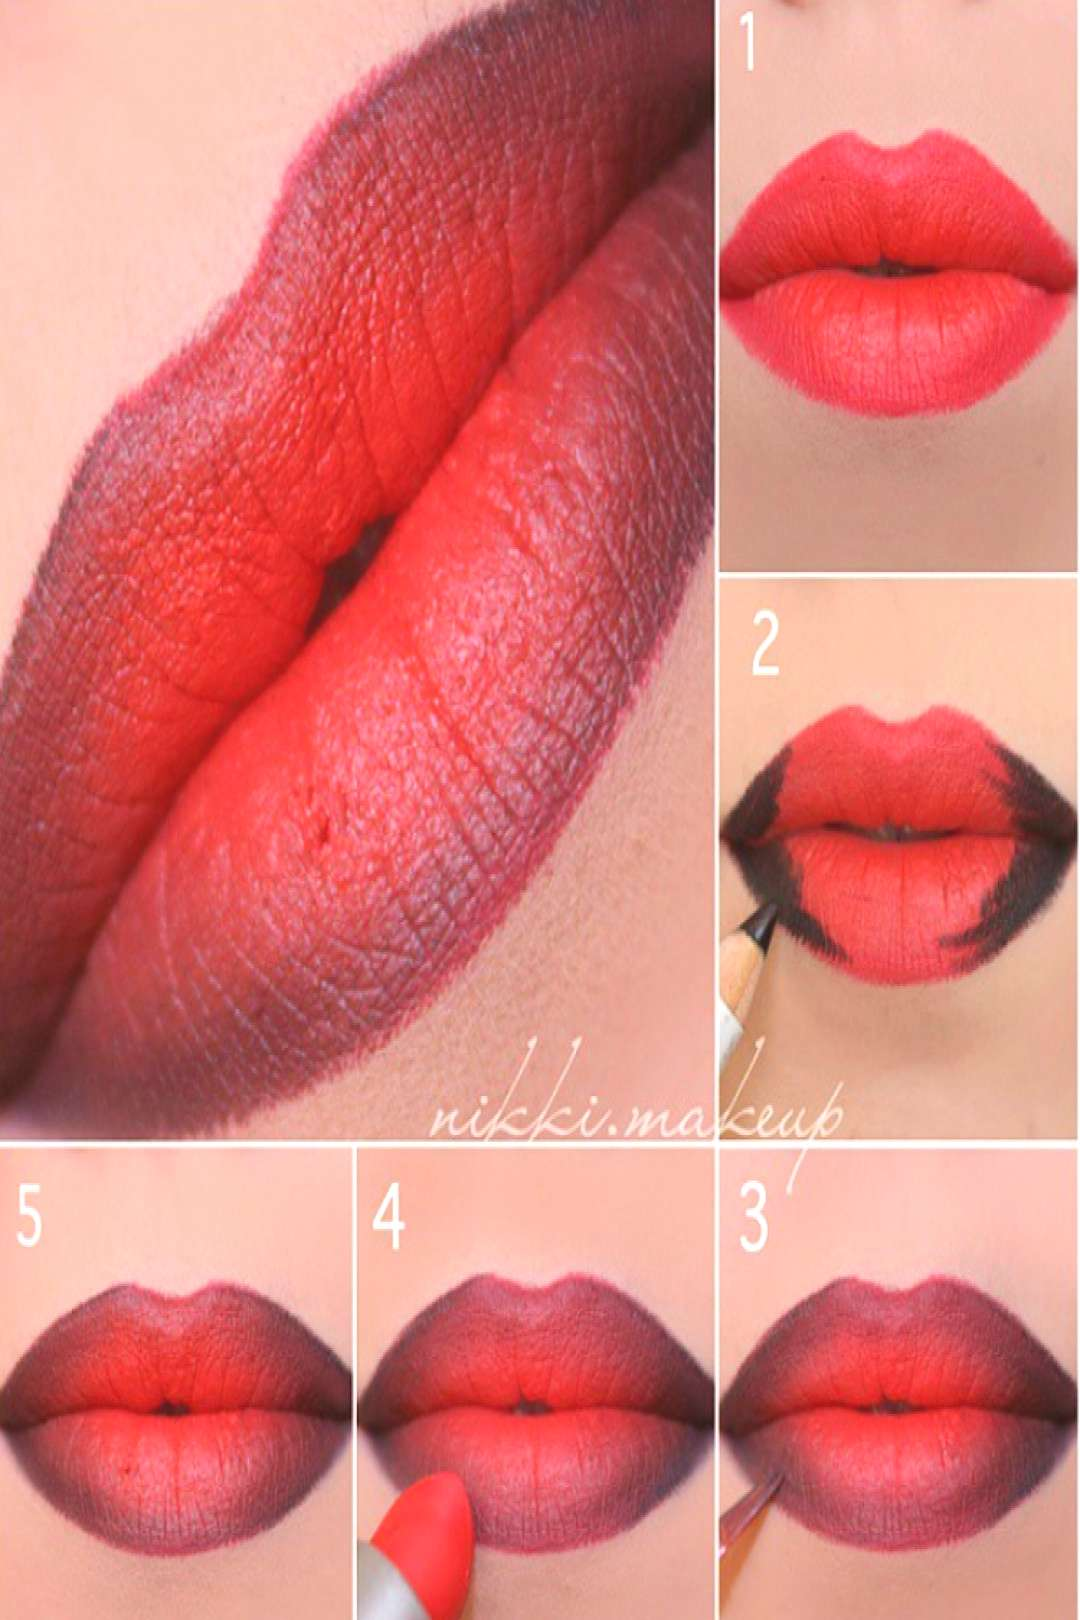 Lips full of makeup: this is how it works with lip contouring and ombré lips! Lips full of makeup: